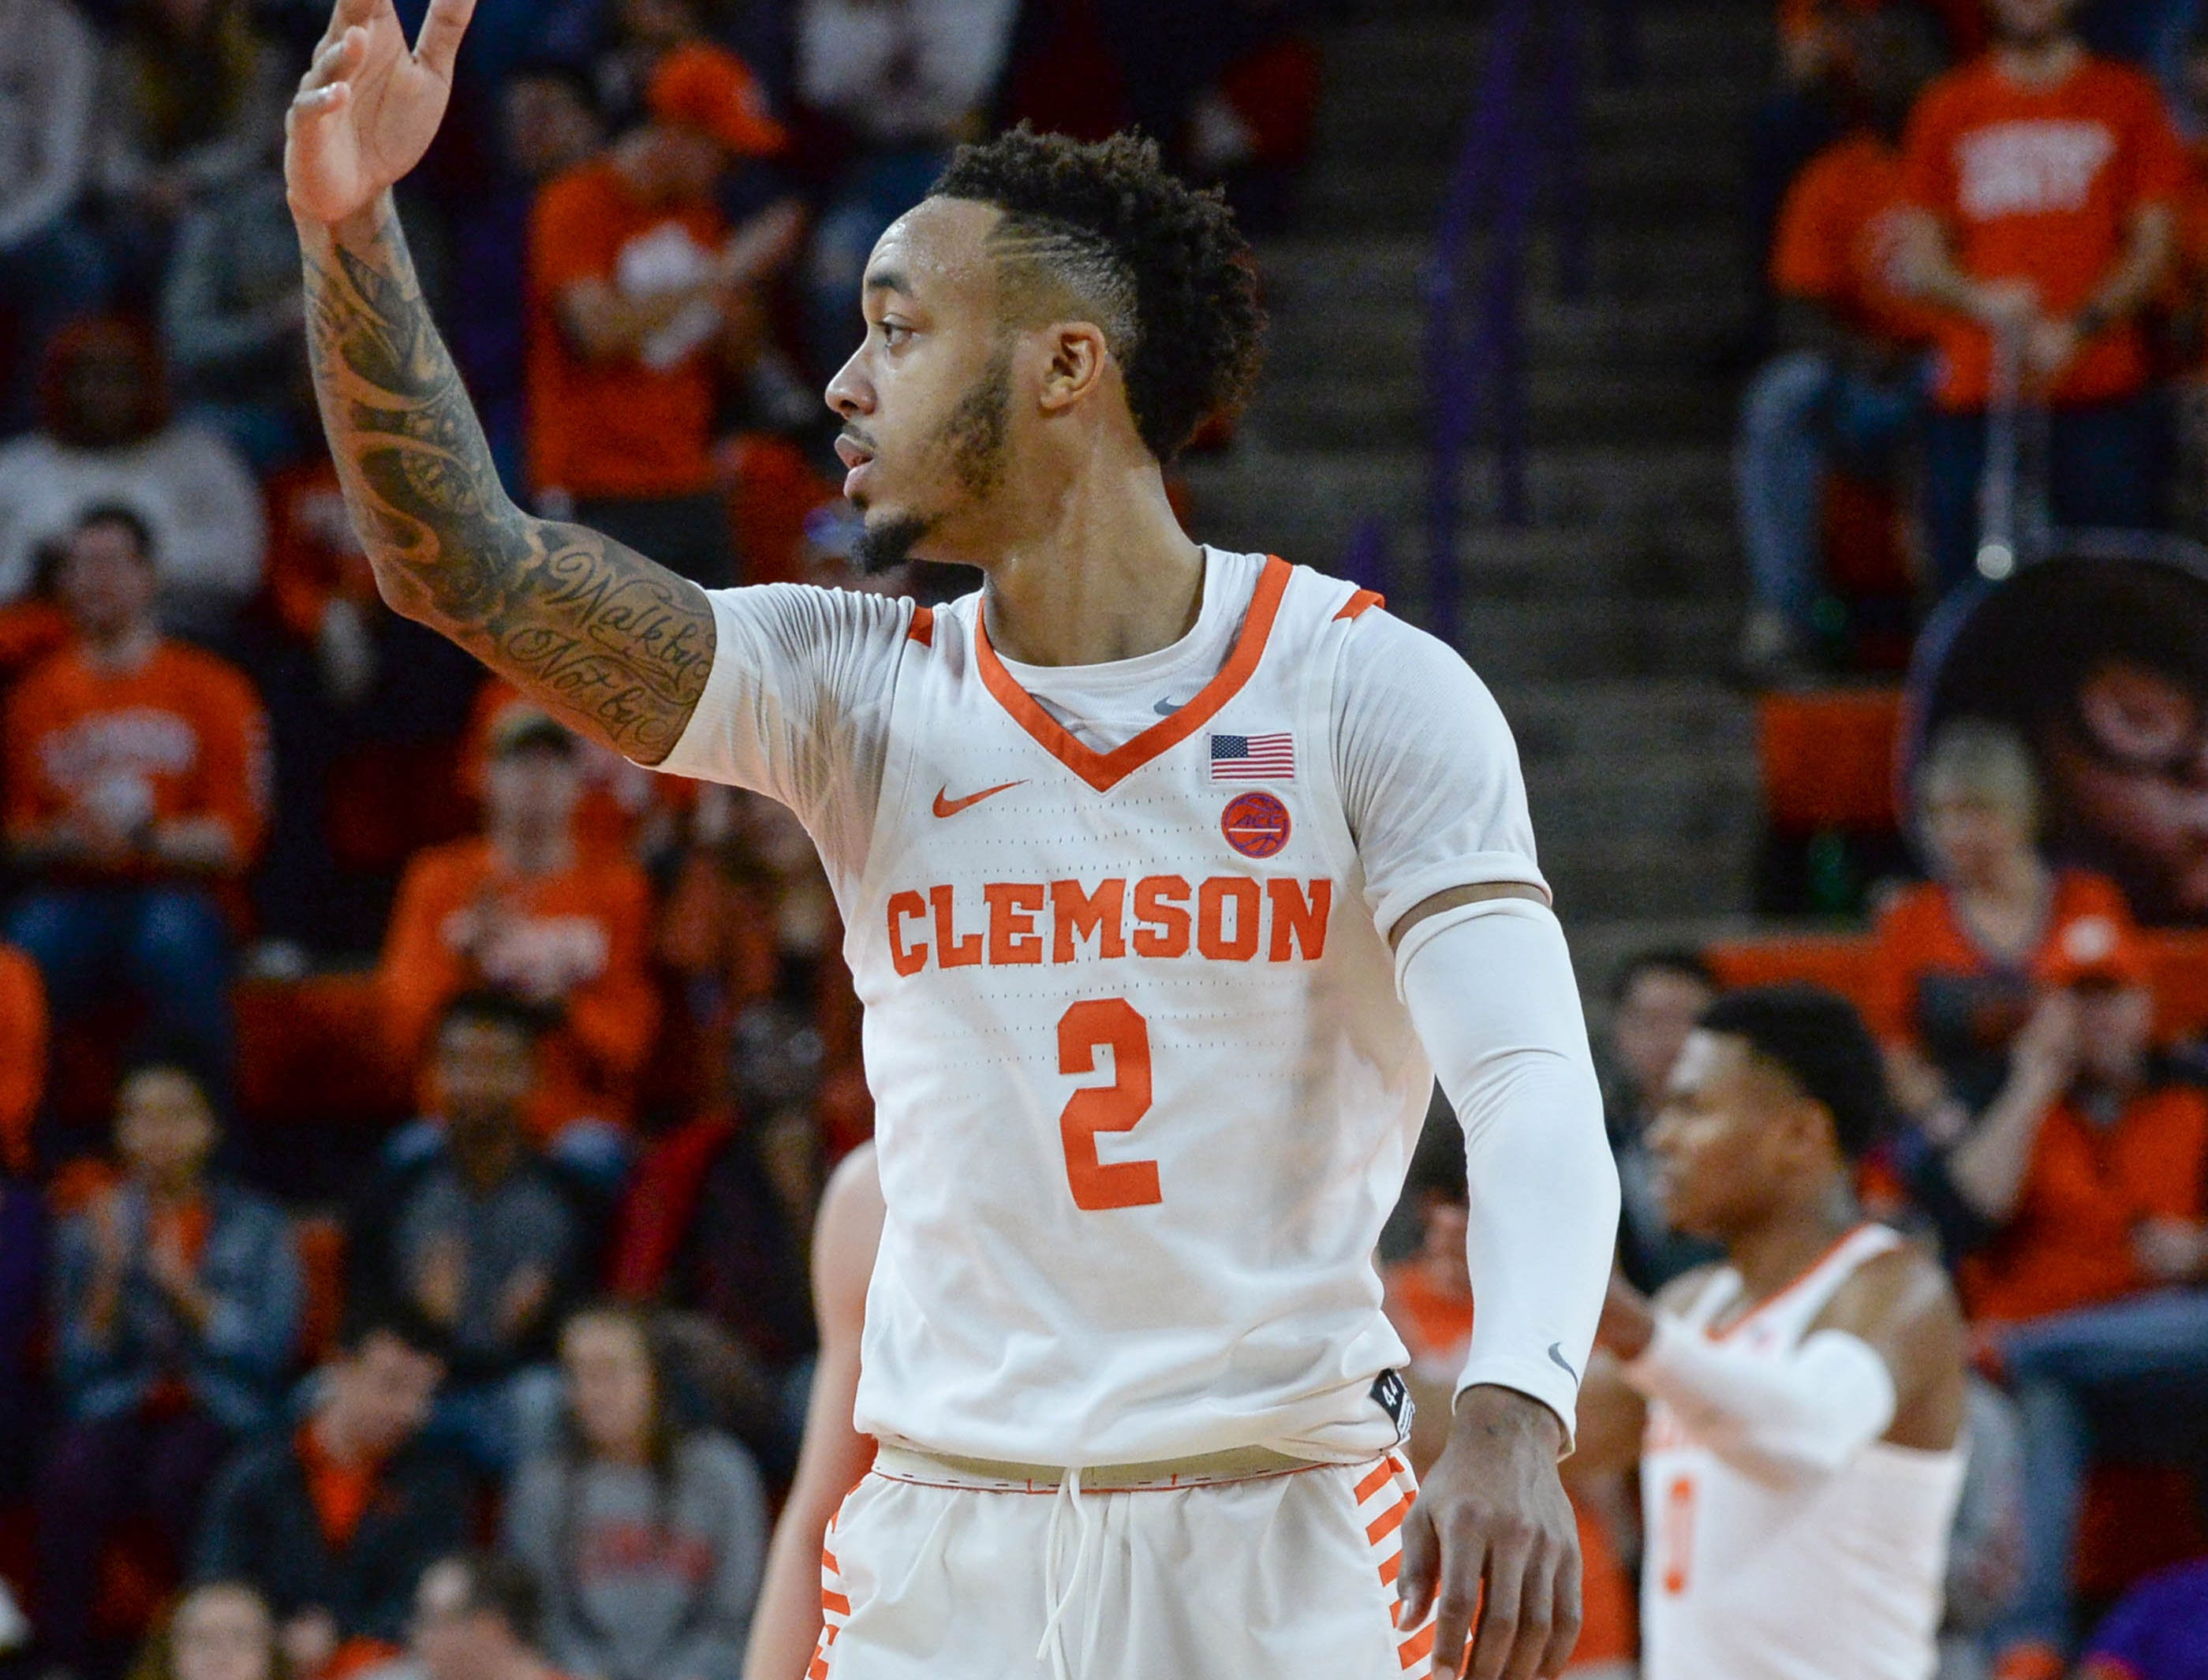 Clemson guard Marcquise Reed (2) signals a turnover in the Syracuse game during the second half in Littlejohn Coliseum in Clemson Saturday, March 9, 2019.